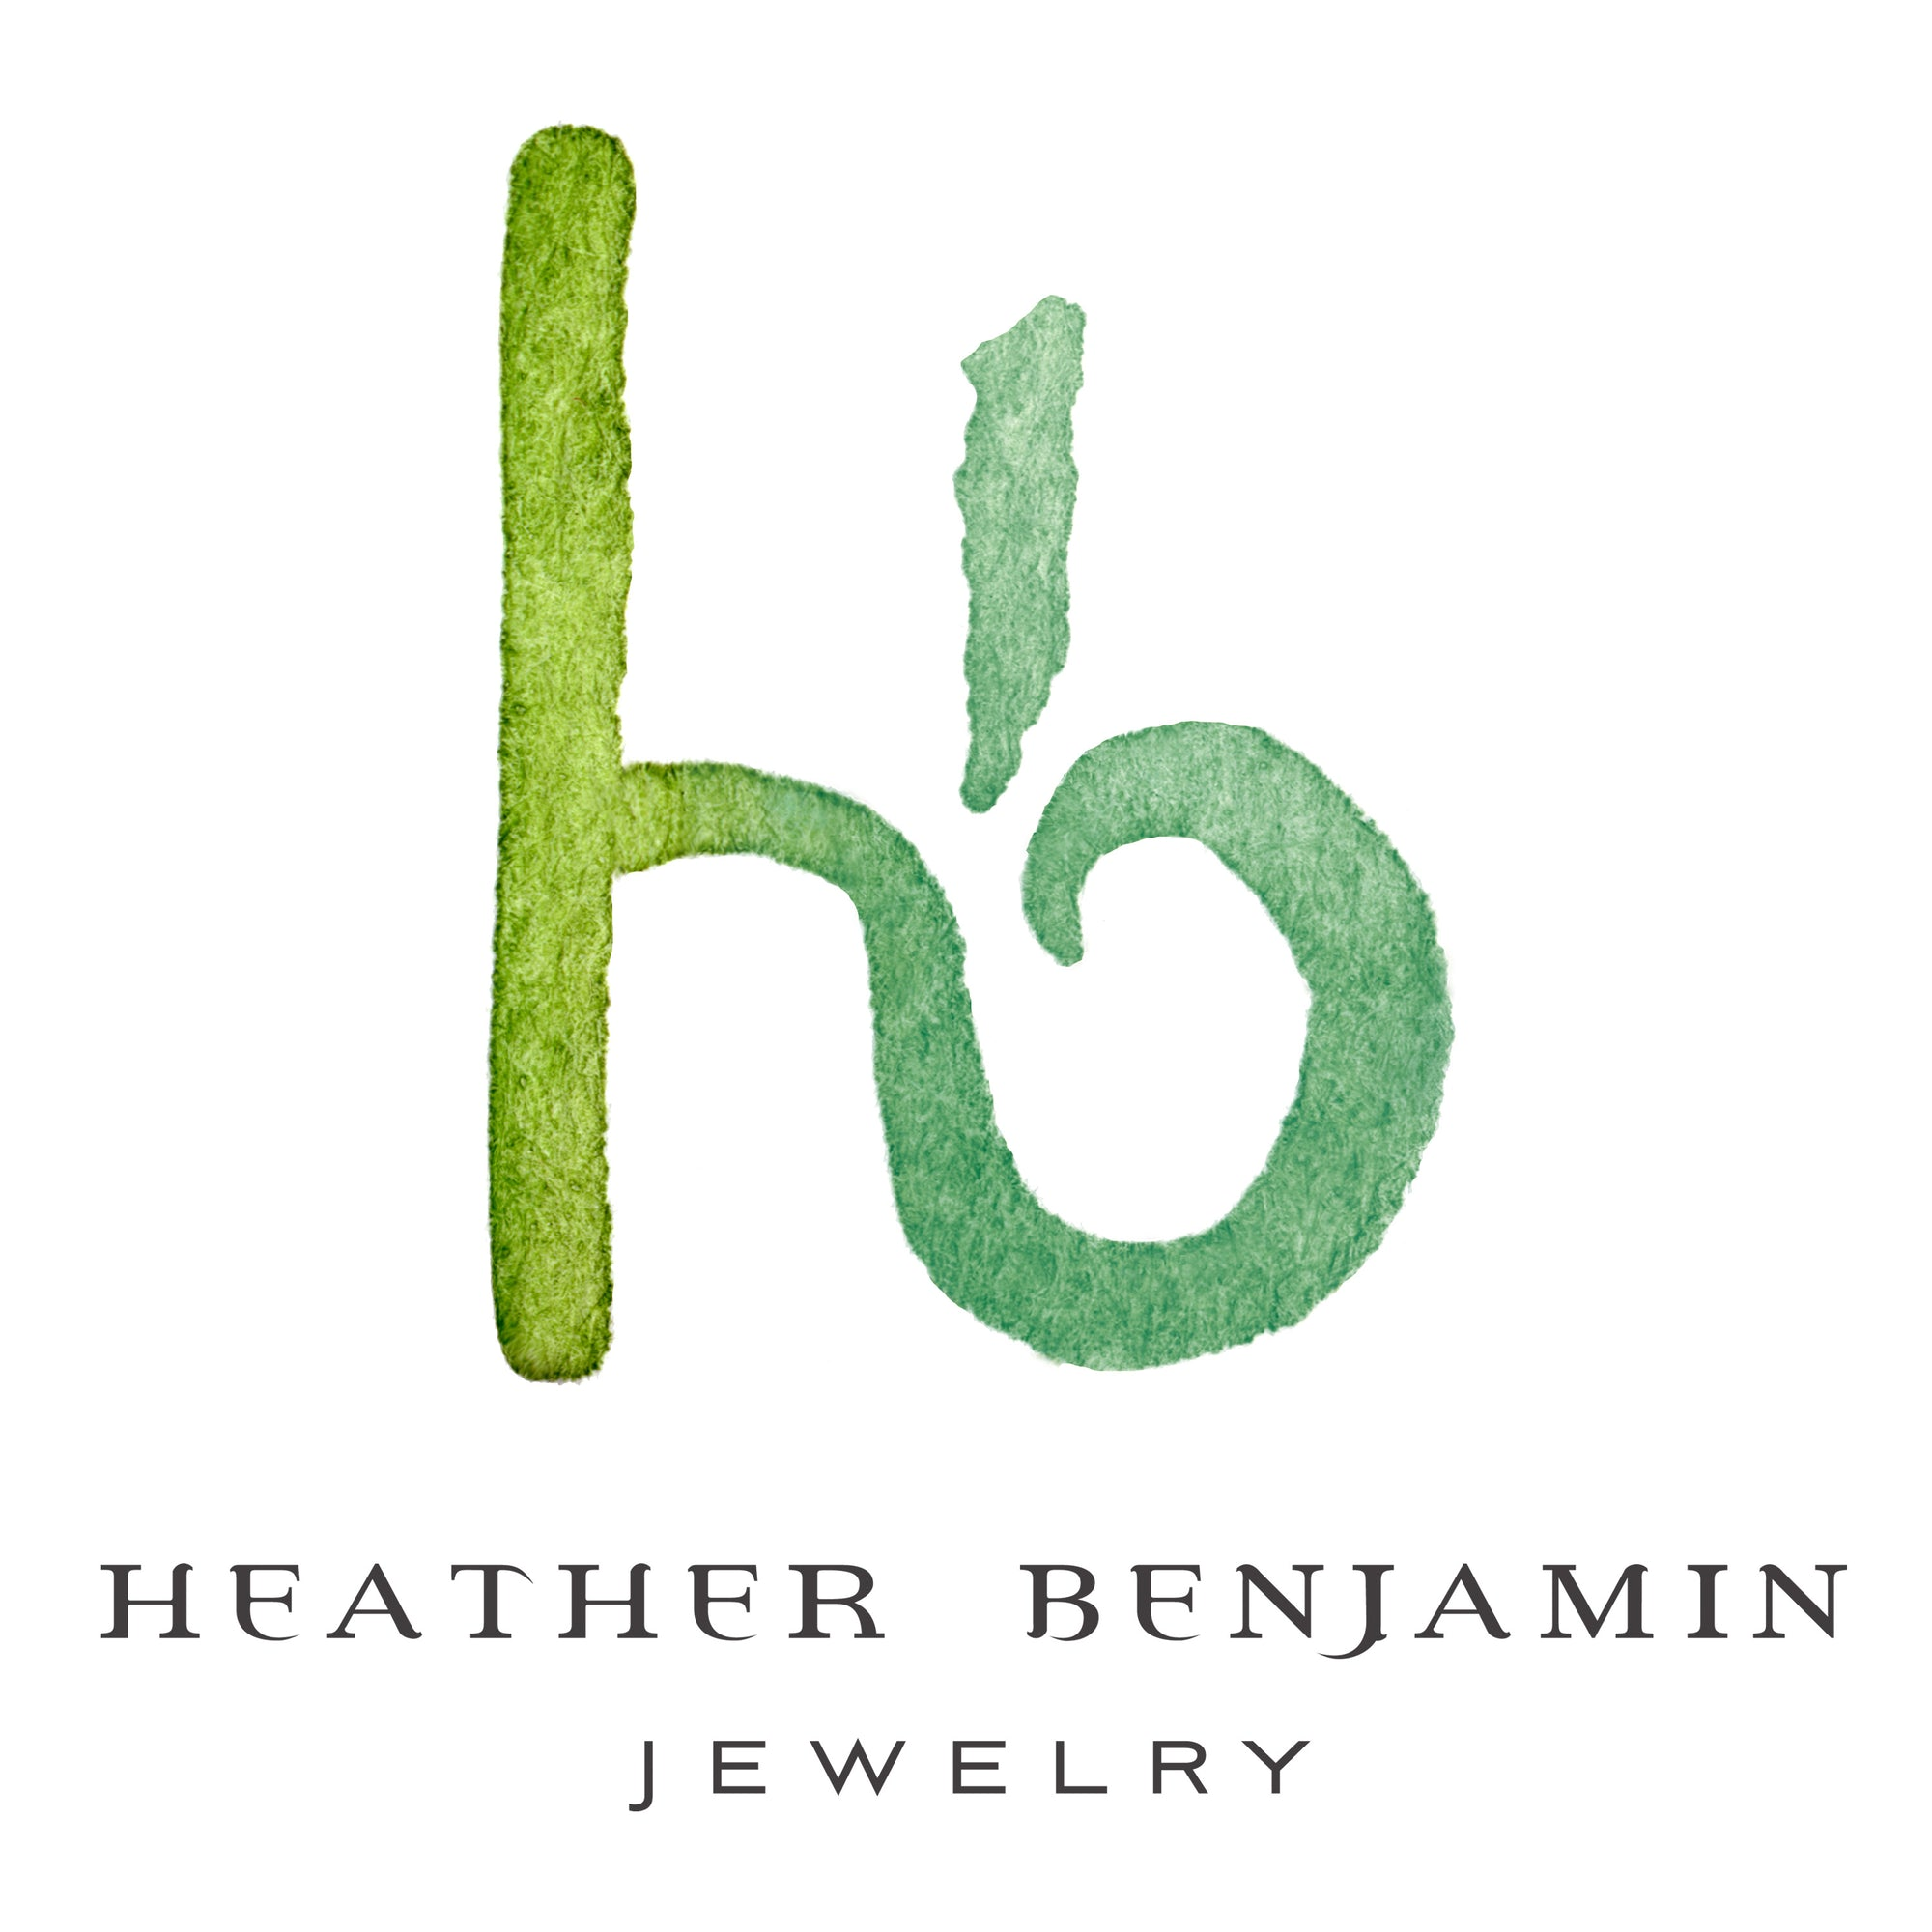 Heather Benjamin Jewelry